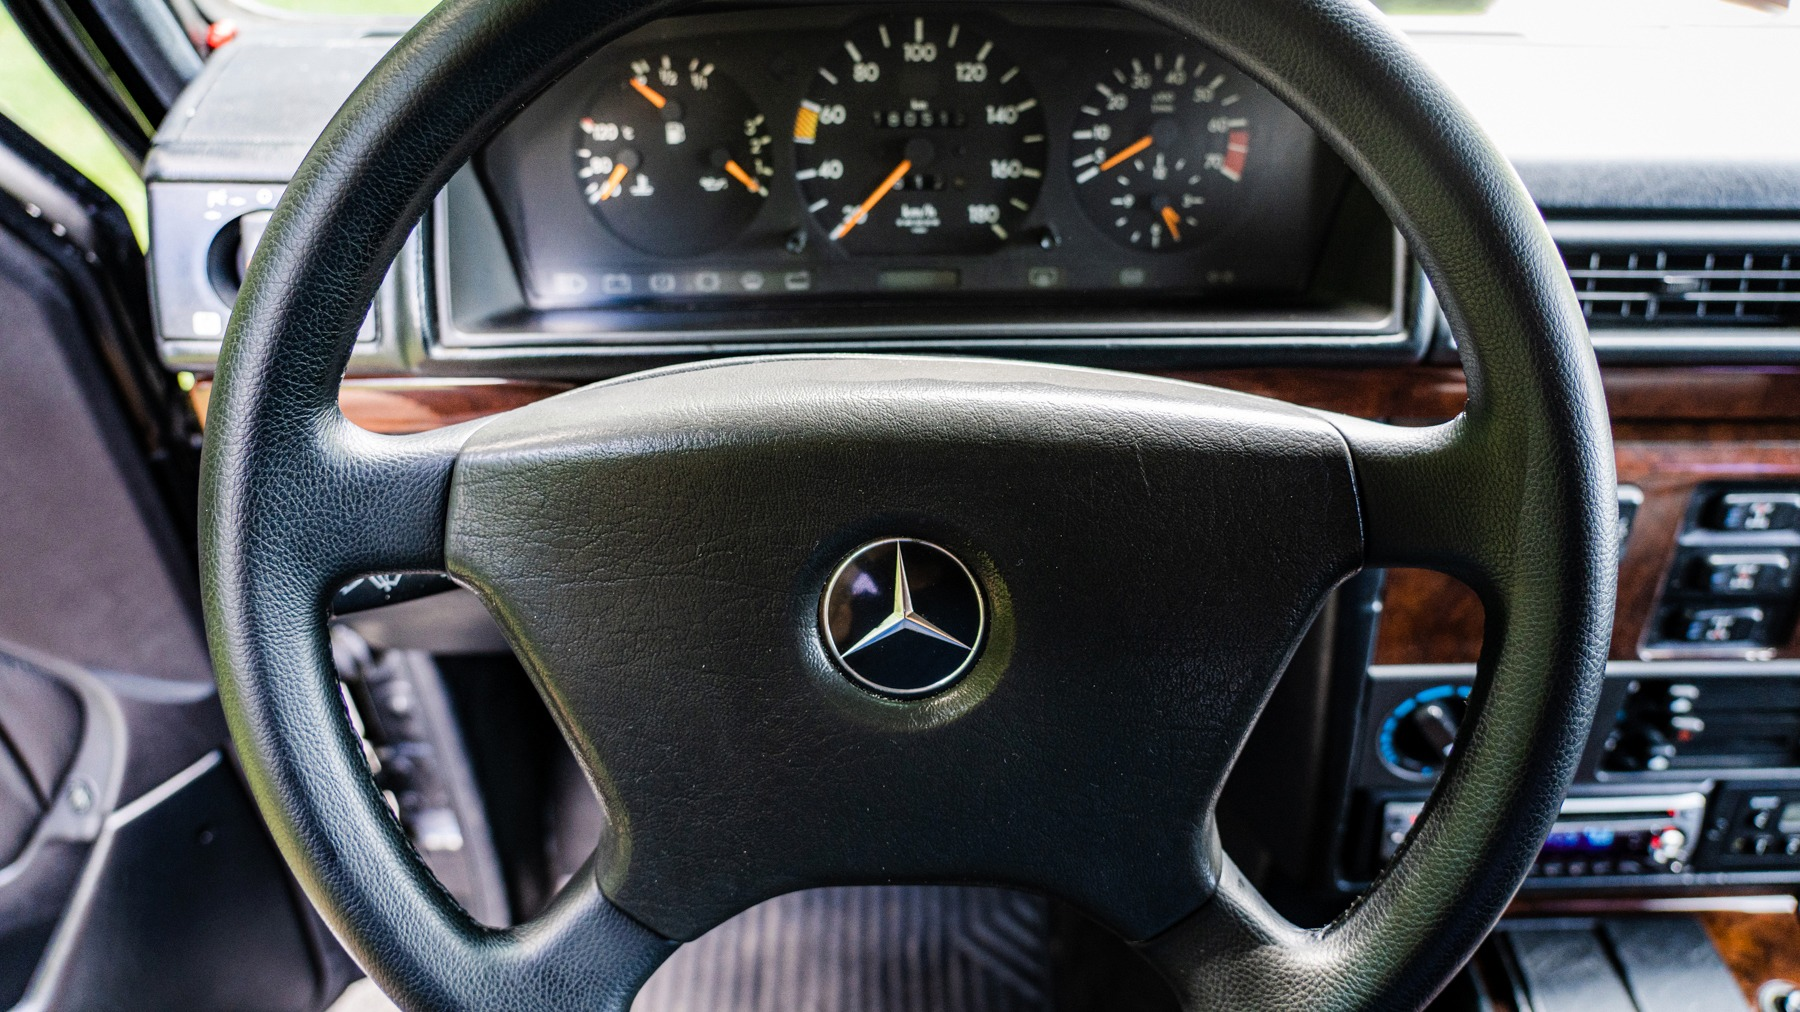 Used 1993 Mercedes-Benz 300GE 5-SPD MAN / 3.0L IN-LINE SIX 168HP / 4X4 / RARE - RUNS GREAT! for sale $69,999 at Formula Imports in Charlotte NC 28227 29